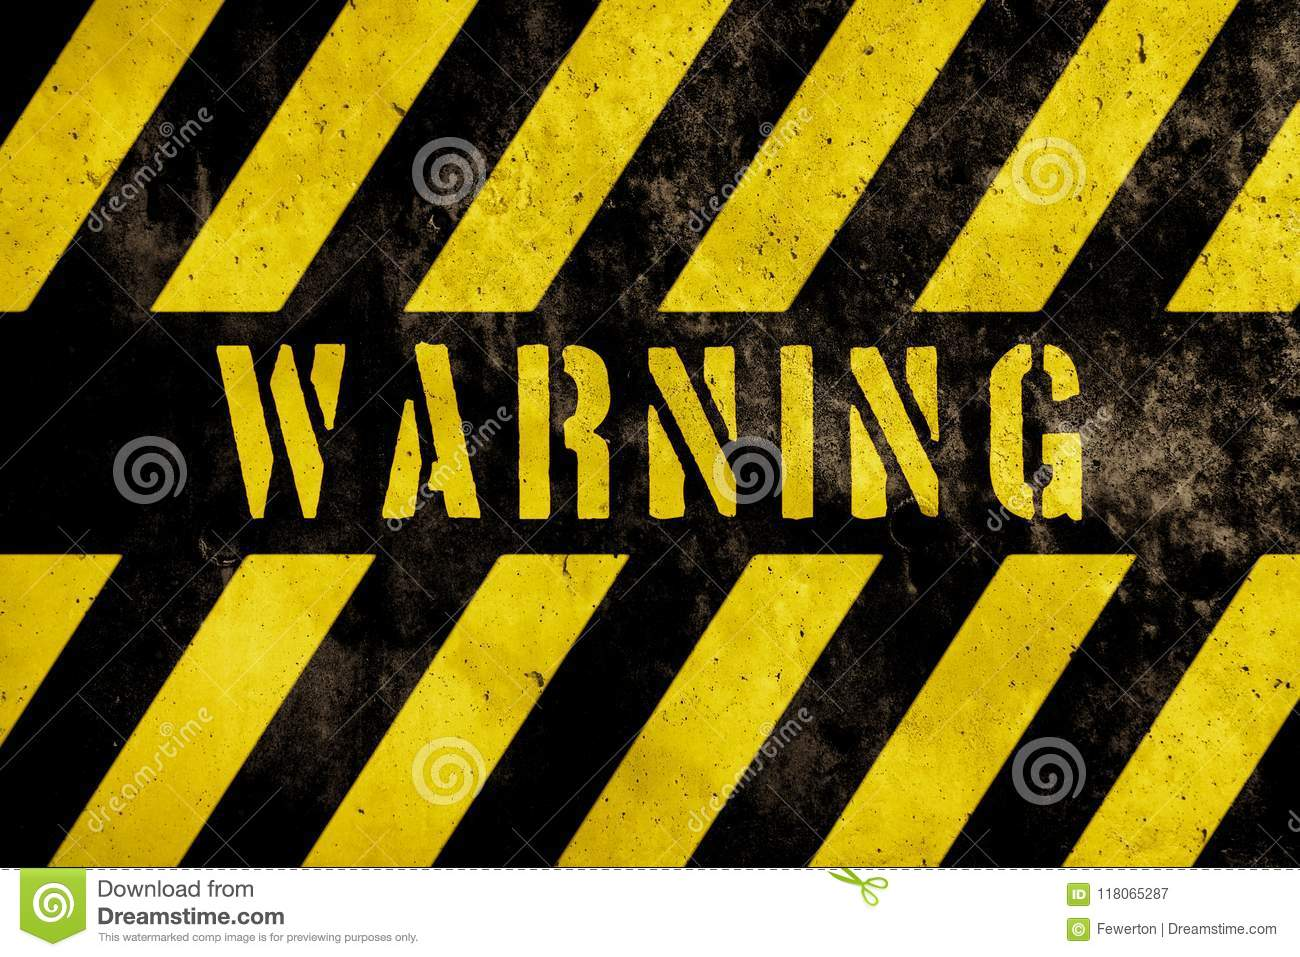 Warning danger sign text with yellow and dark stripes painted over concrete wall facade texture background.